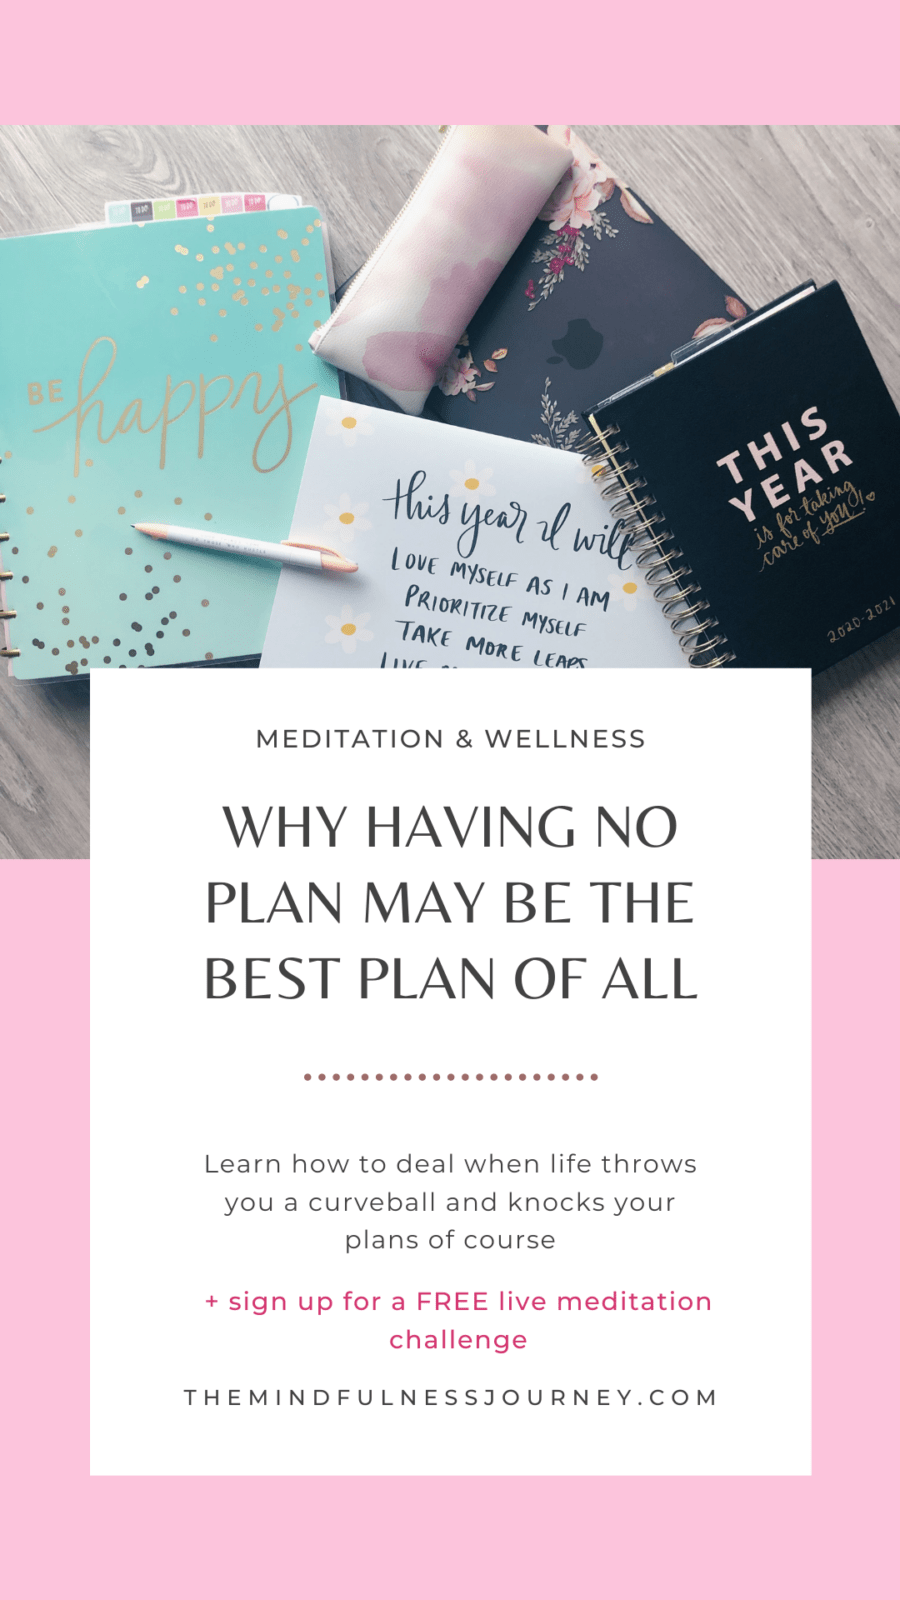 Why having no plan may be the best plan of all